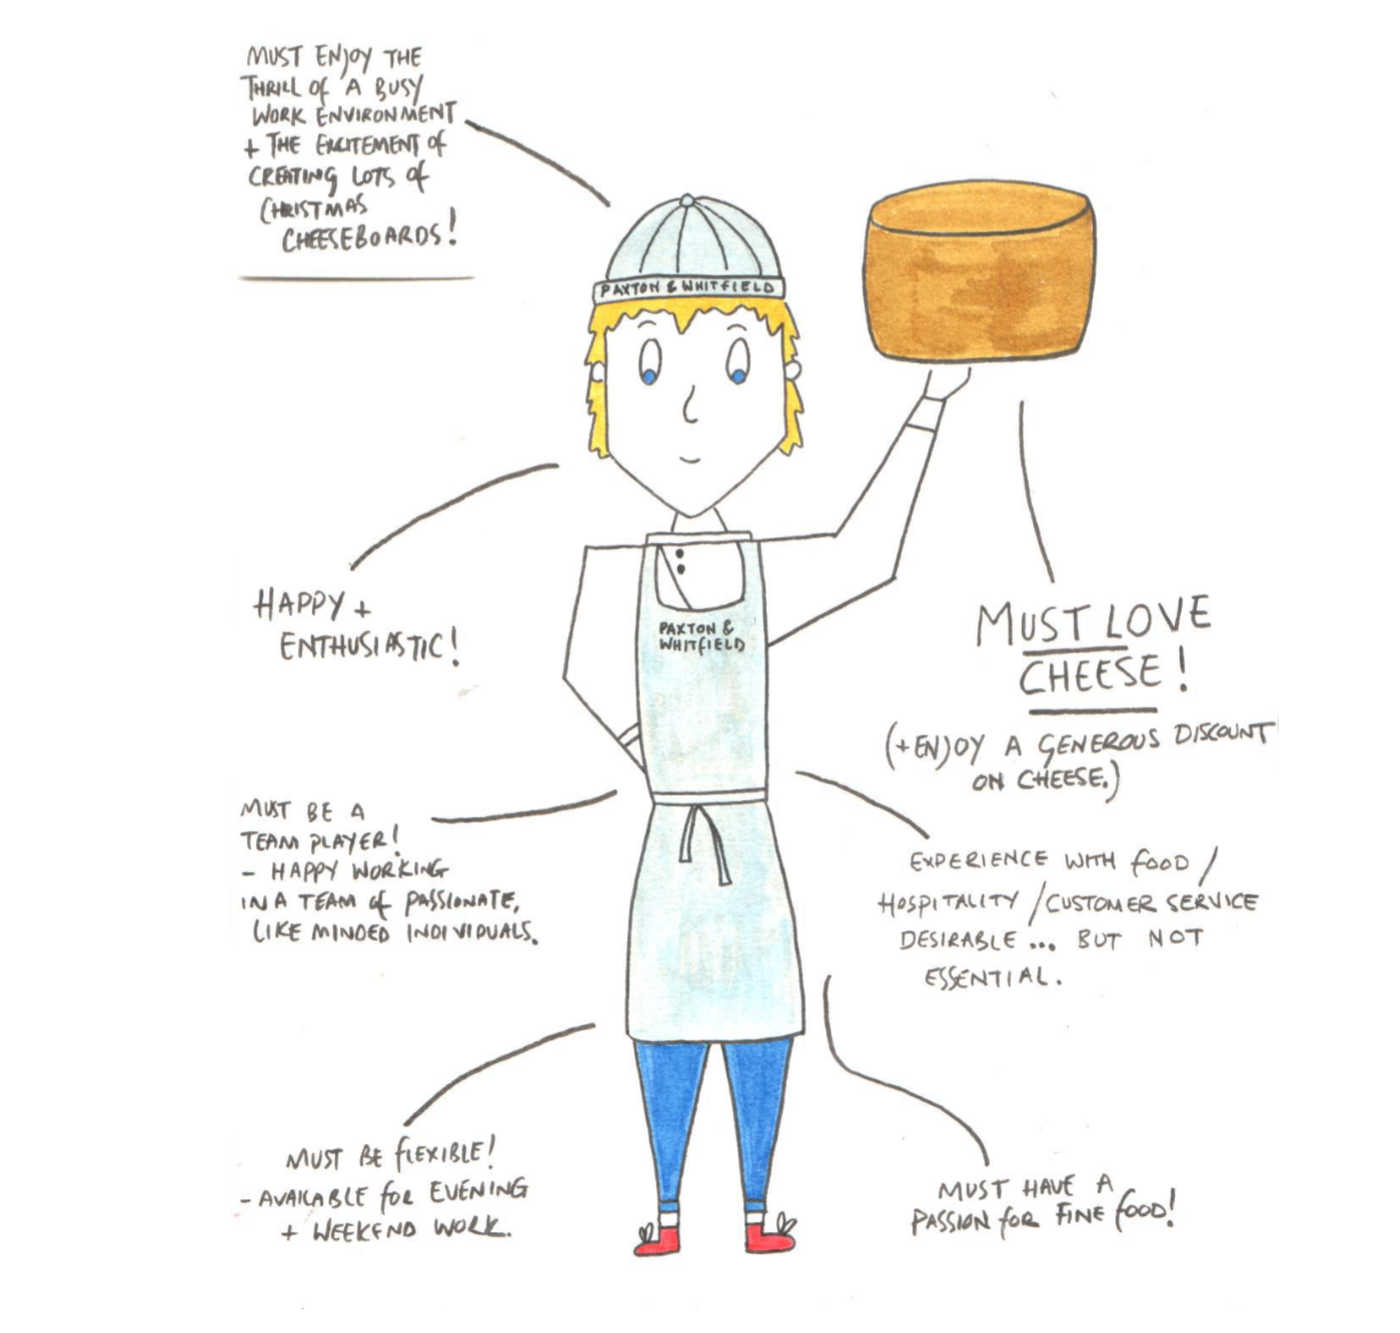 Cheese-Jobs-Recruitment-Illustration-Low-Res-Web